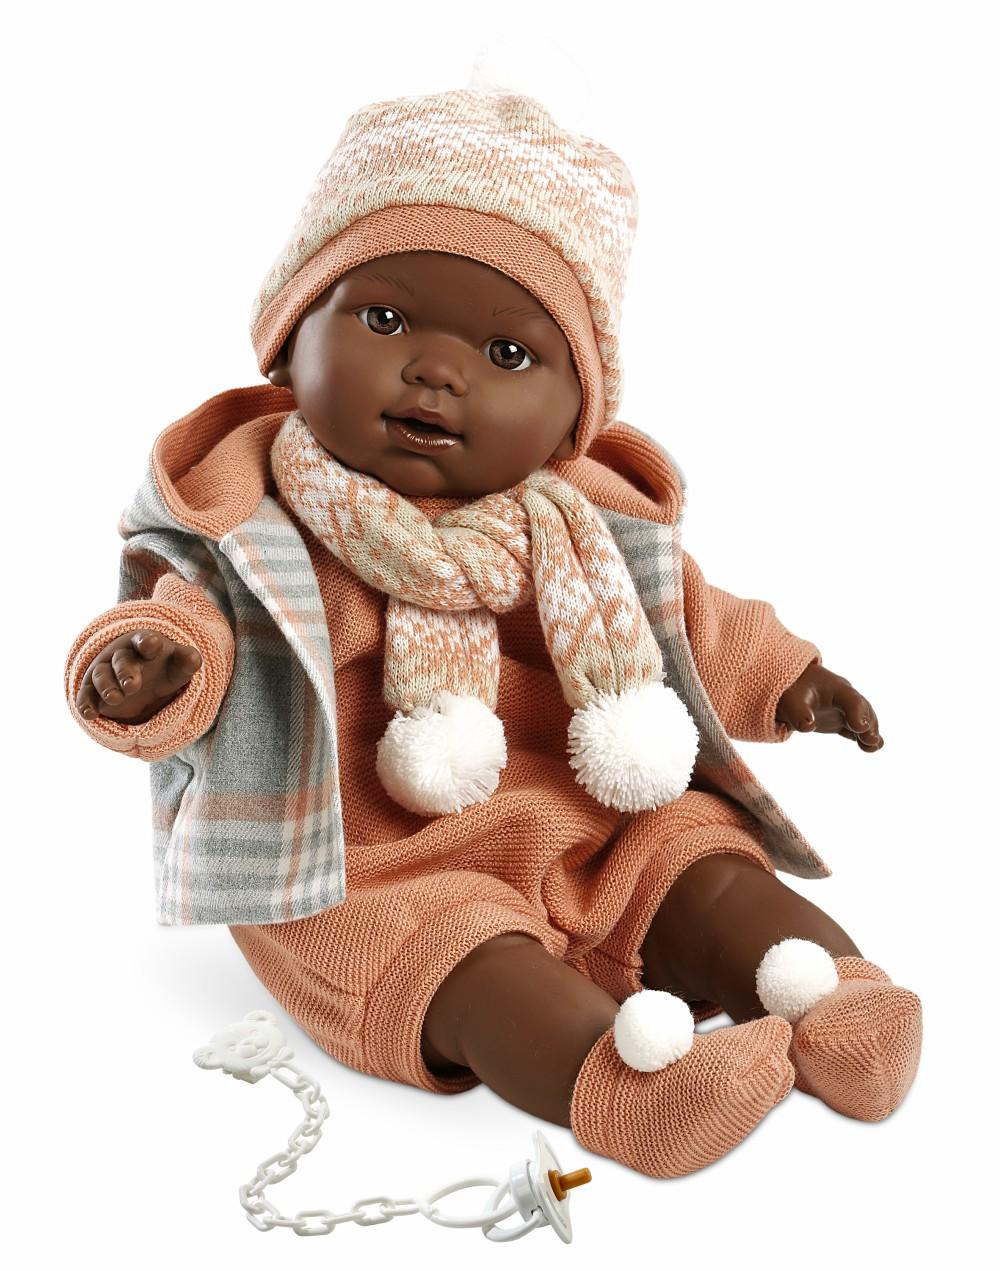 black boy doll in a peach outfit